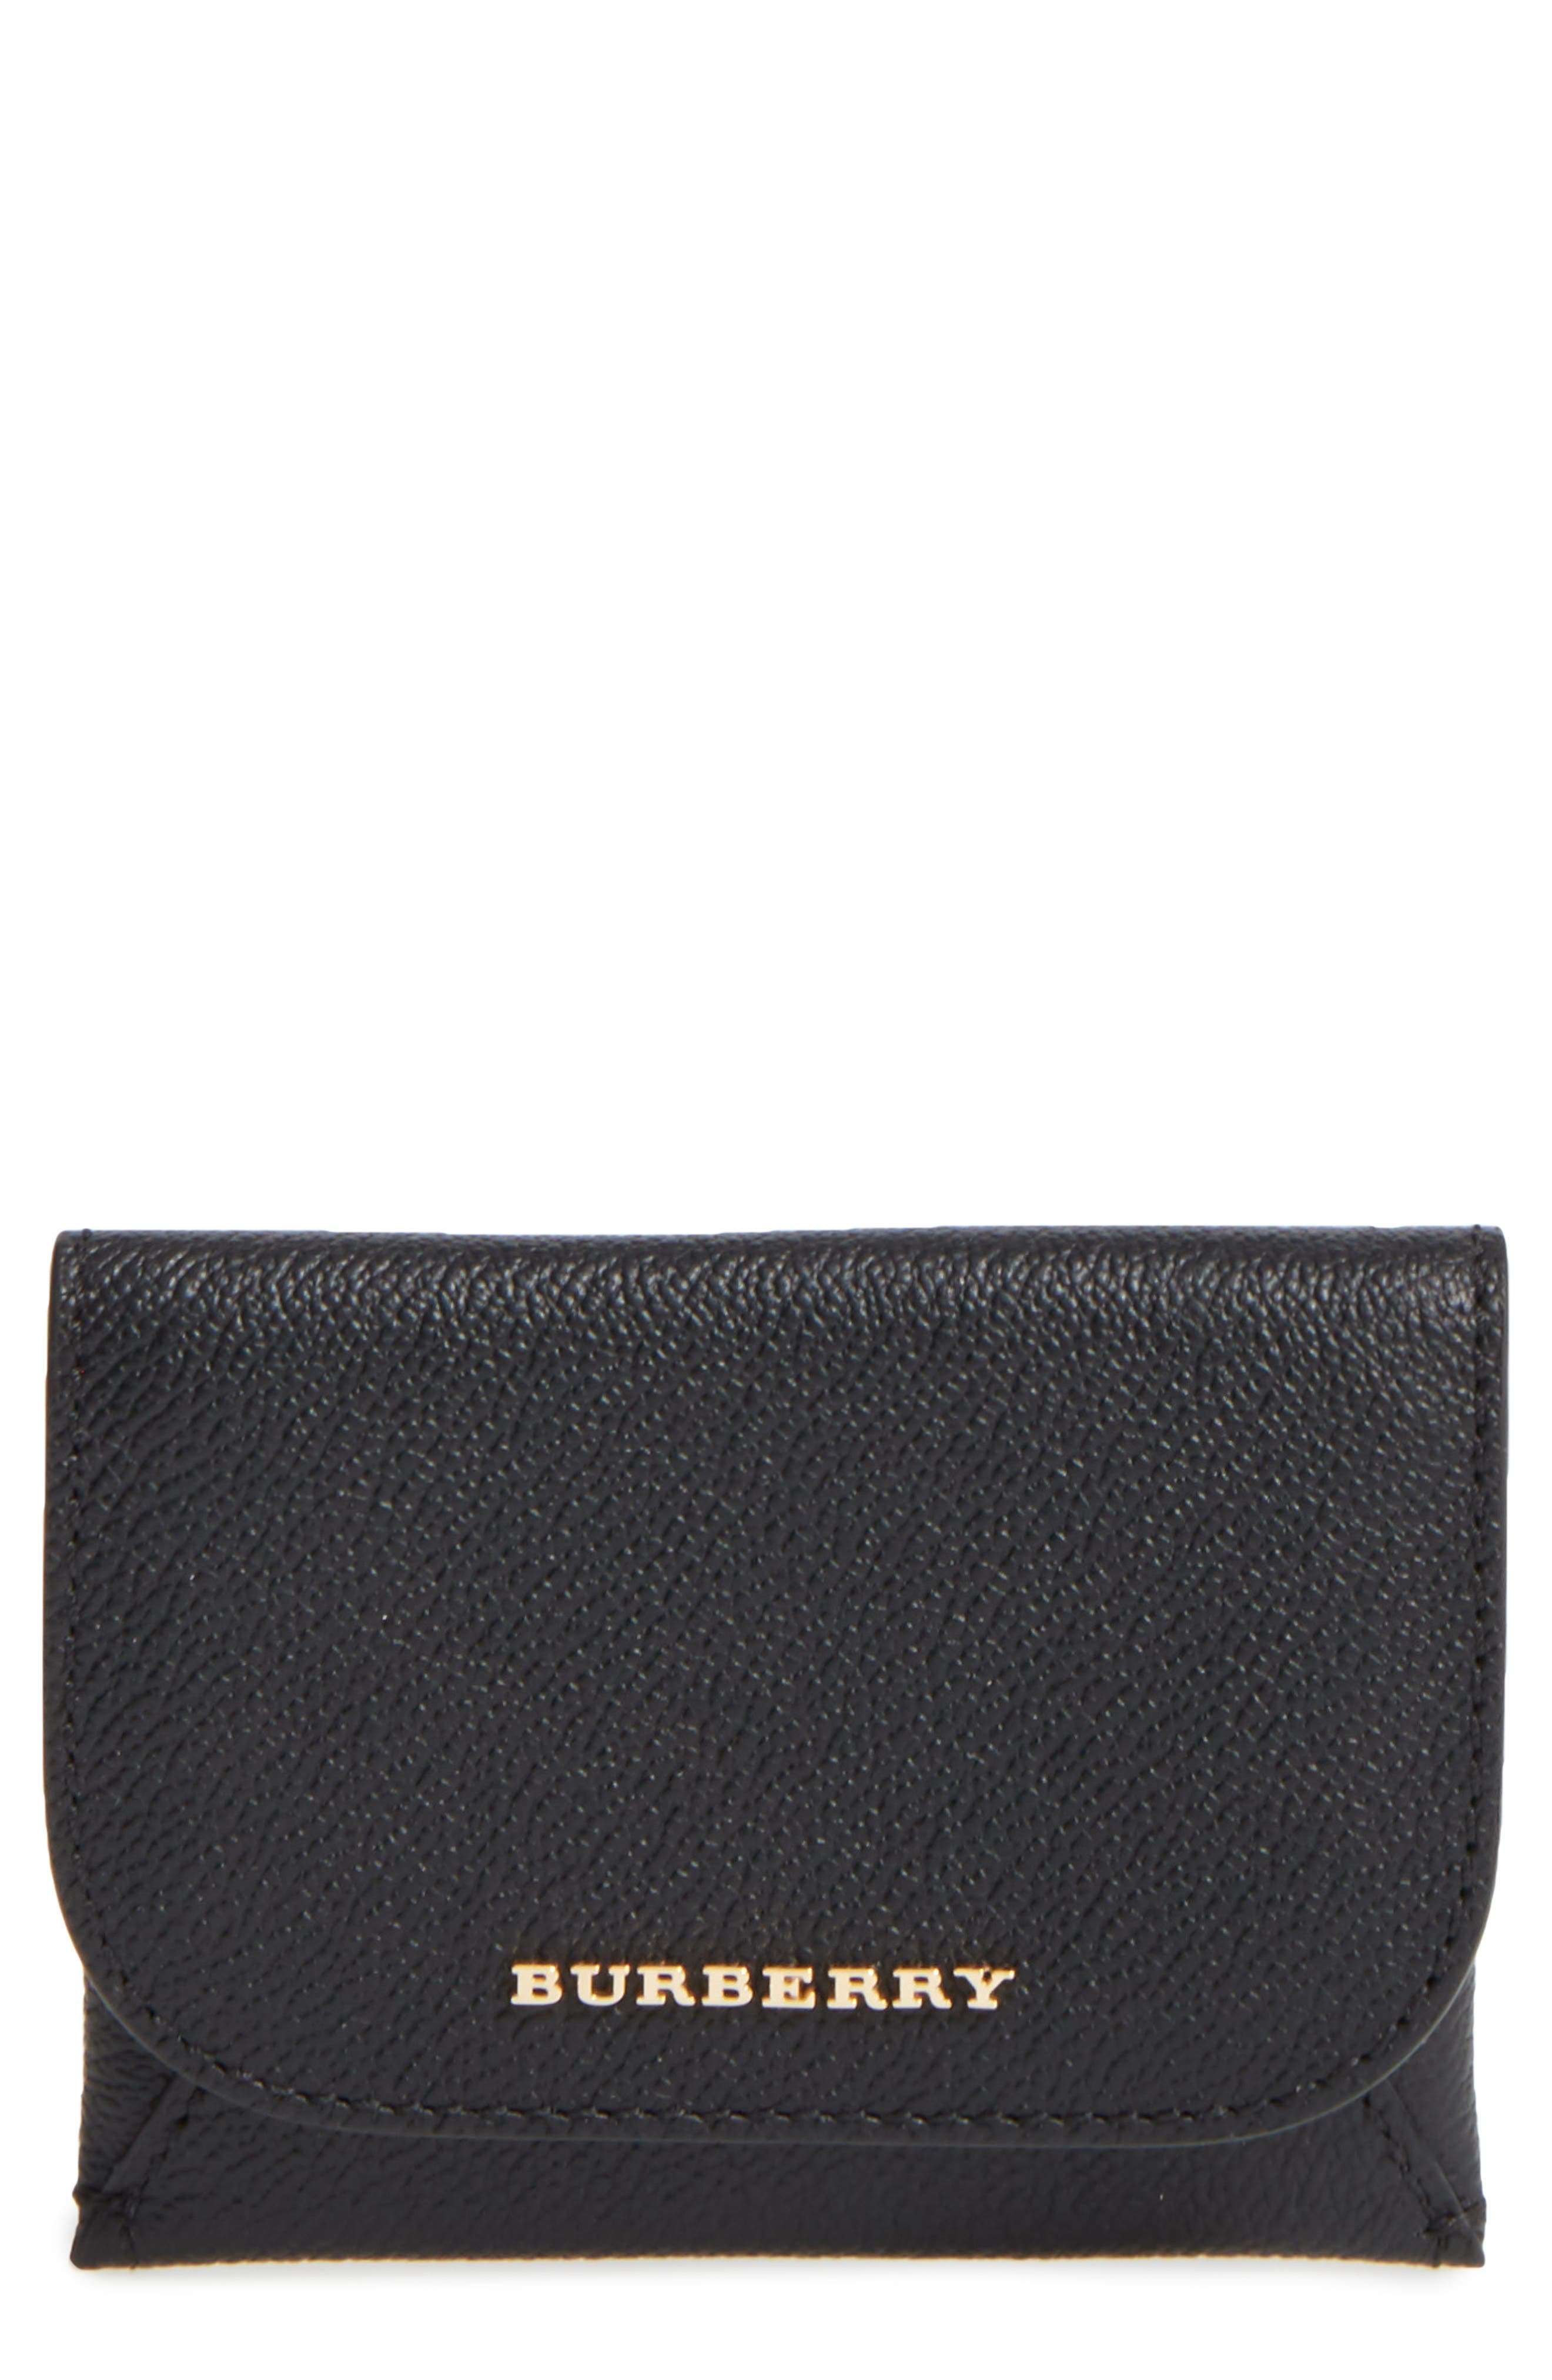 Mayfield Leather Card Case,                             Main thumbnail 1, color,                             001